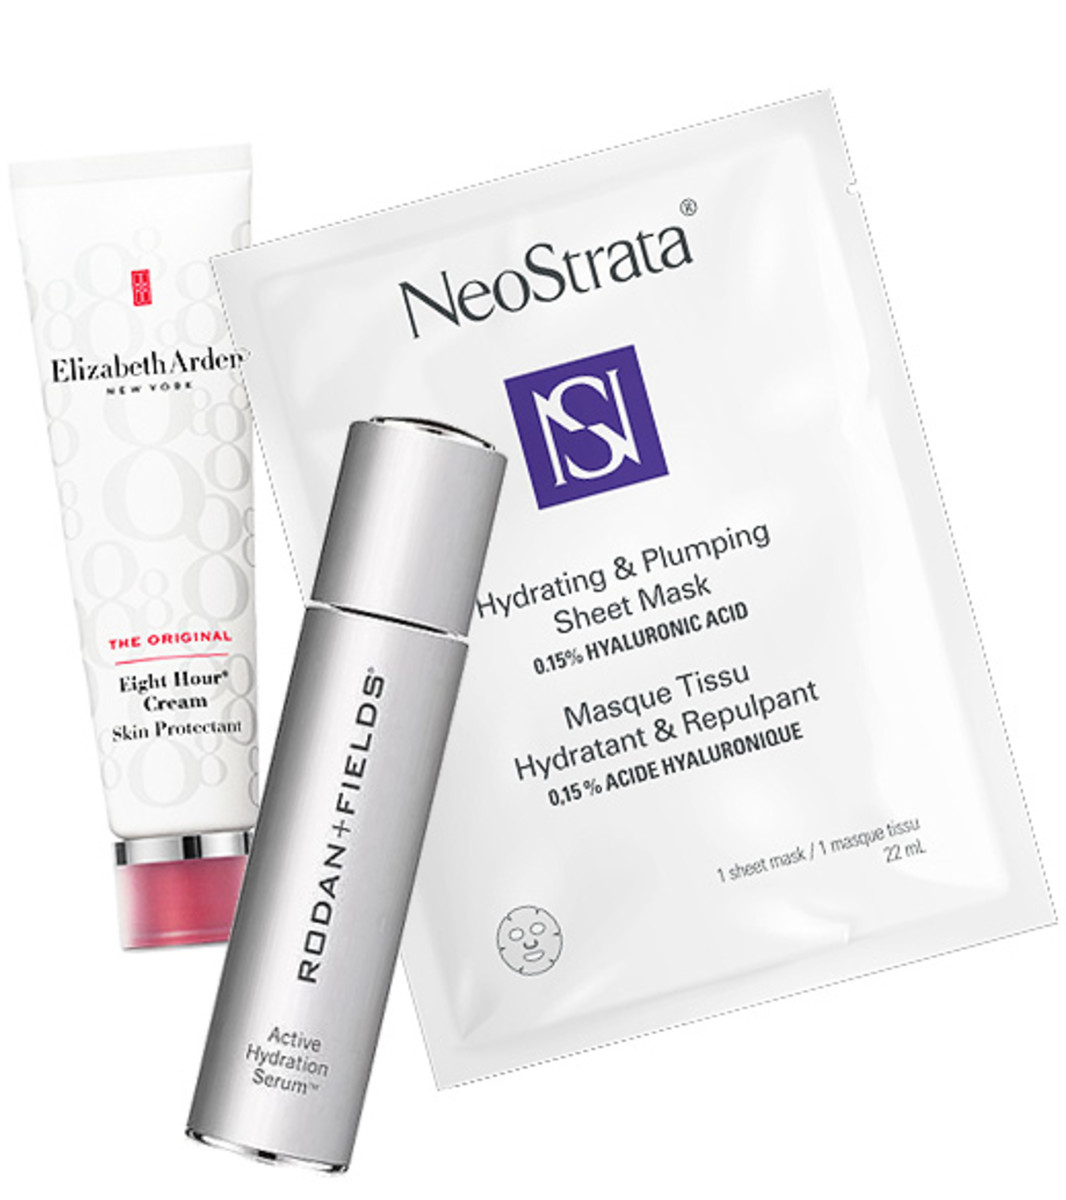 Elizabeth Arden Eight Hour Cream Skin Protectant, Rodan + Fields Active Hydration Serum and Neostrata Hydrating & Plumping 15% Hyaluronic Acid Sheet Mask